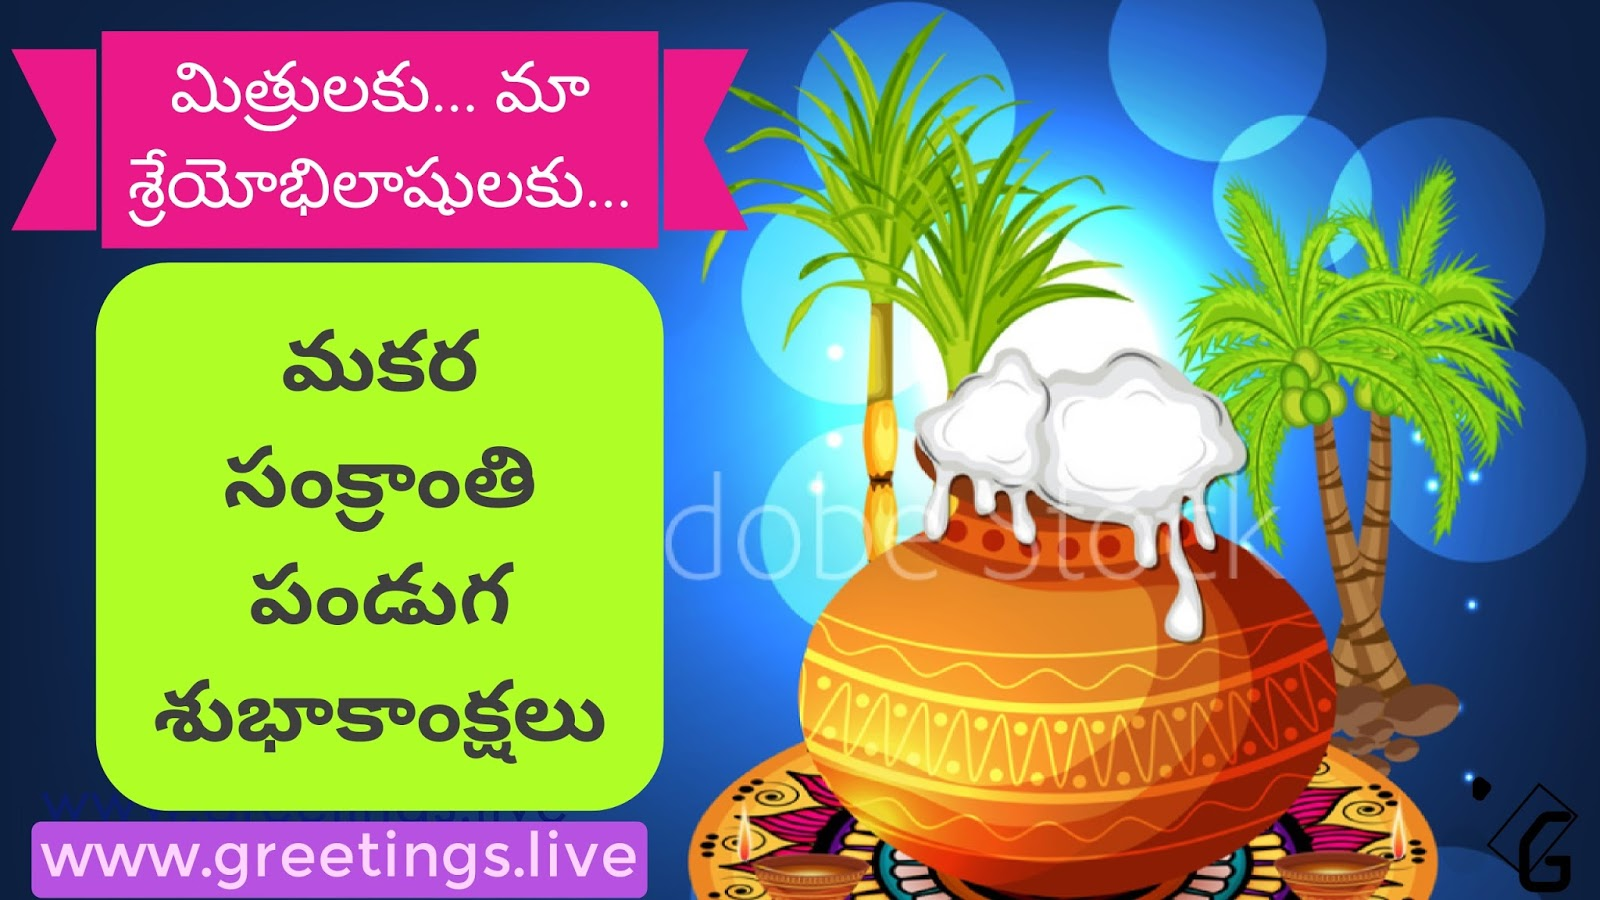 Greetingsve hd images love smile birthday wishes free download happy festival telugu makara sankranthi wishes kristyandbryce Images